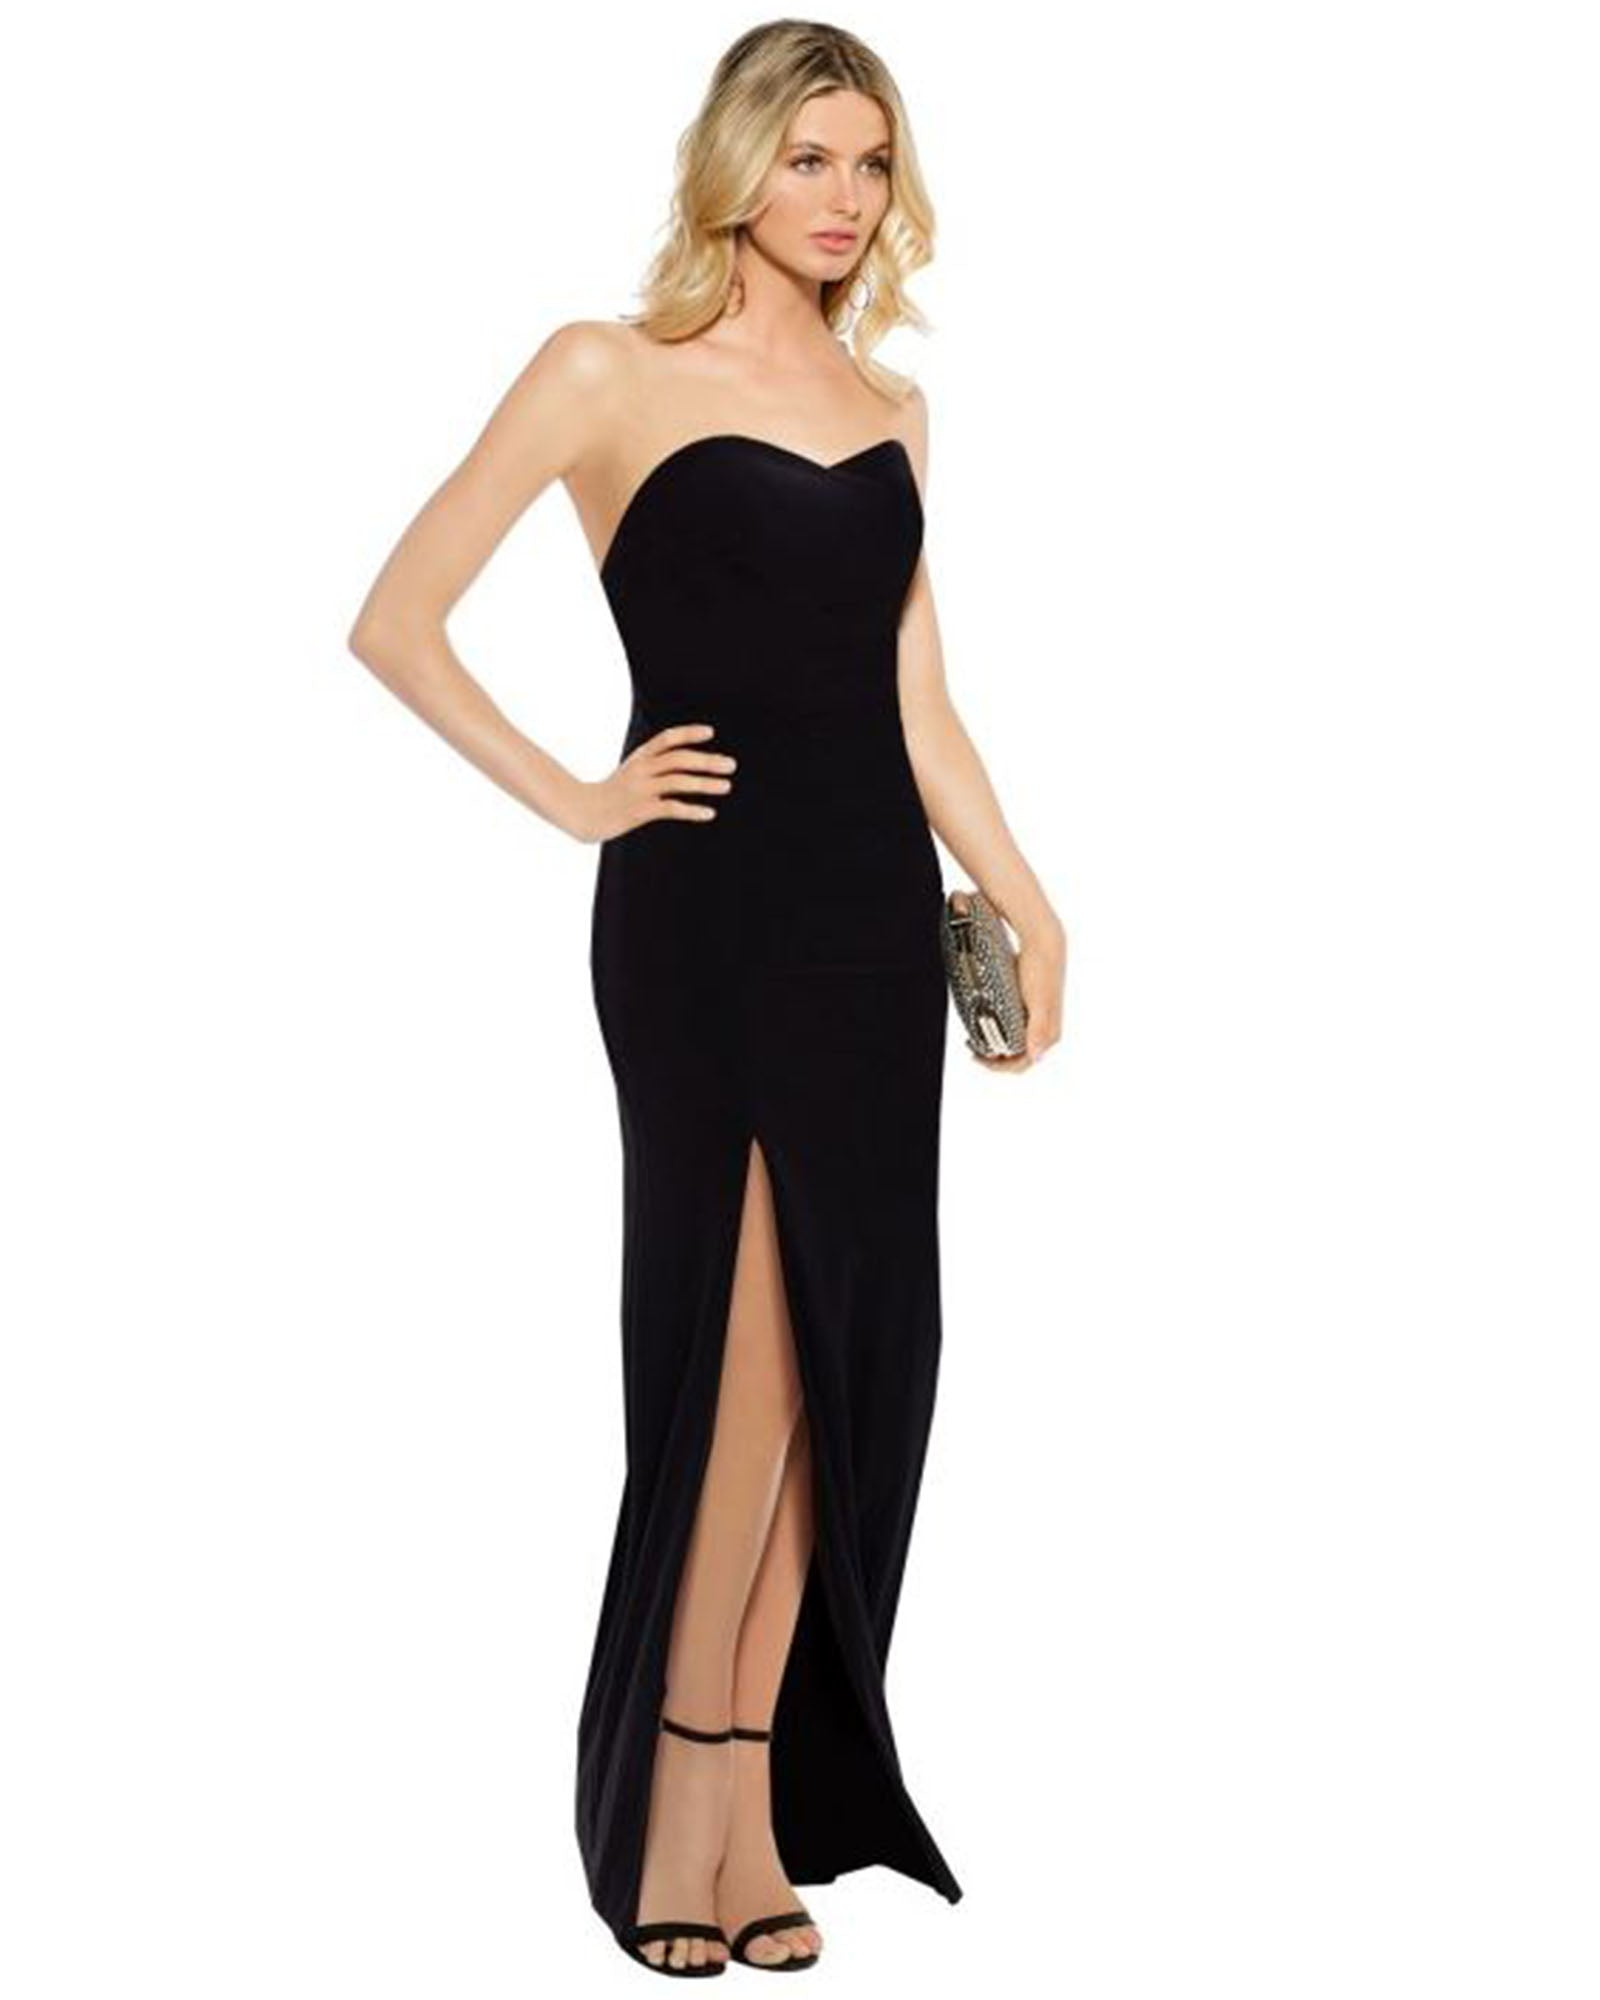 SKIVA strapless evening dress long black split gown open back sheath stretch fabric